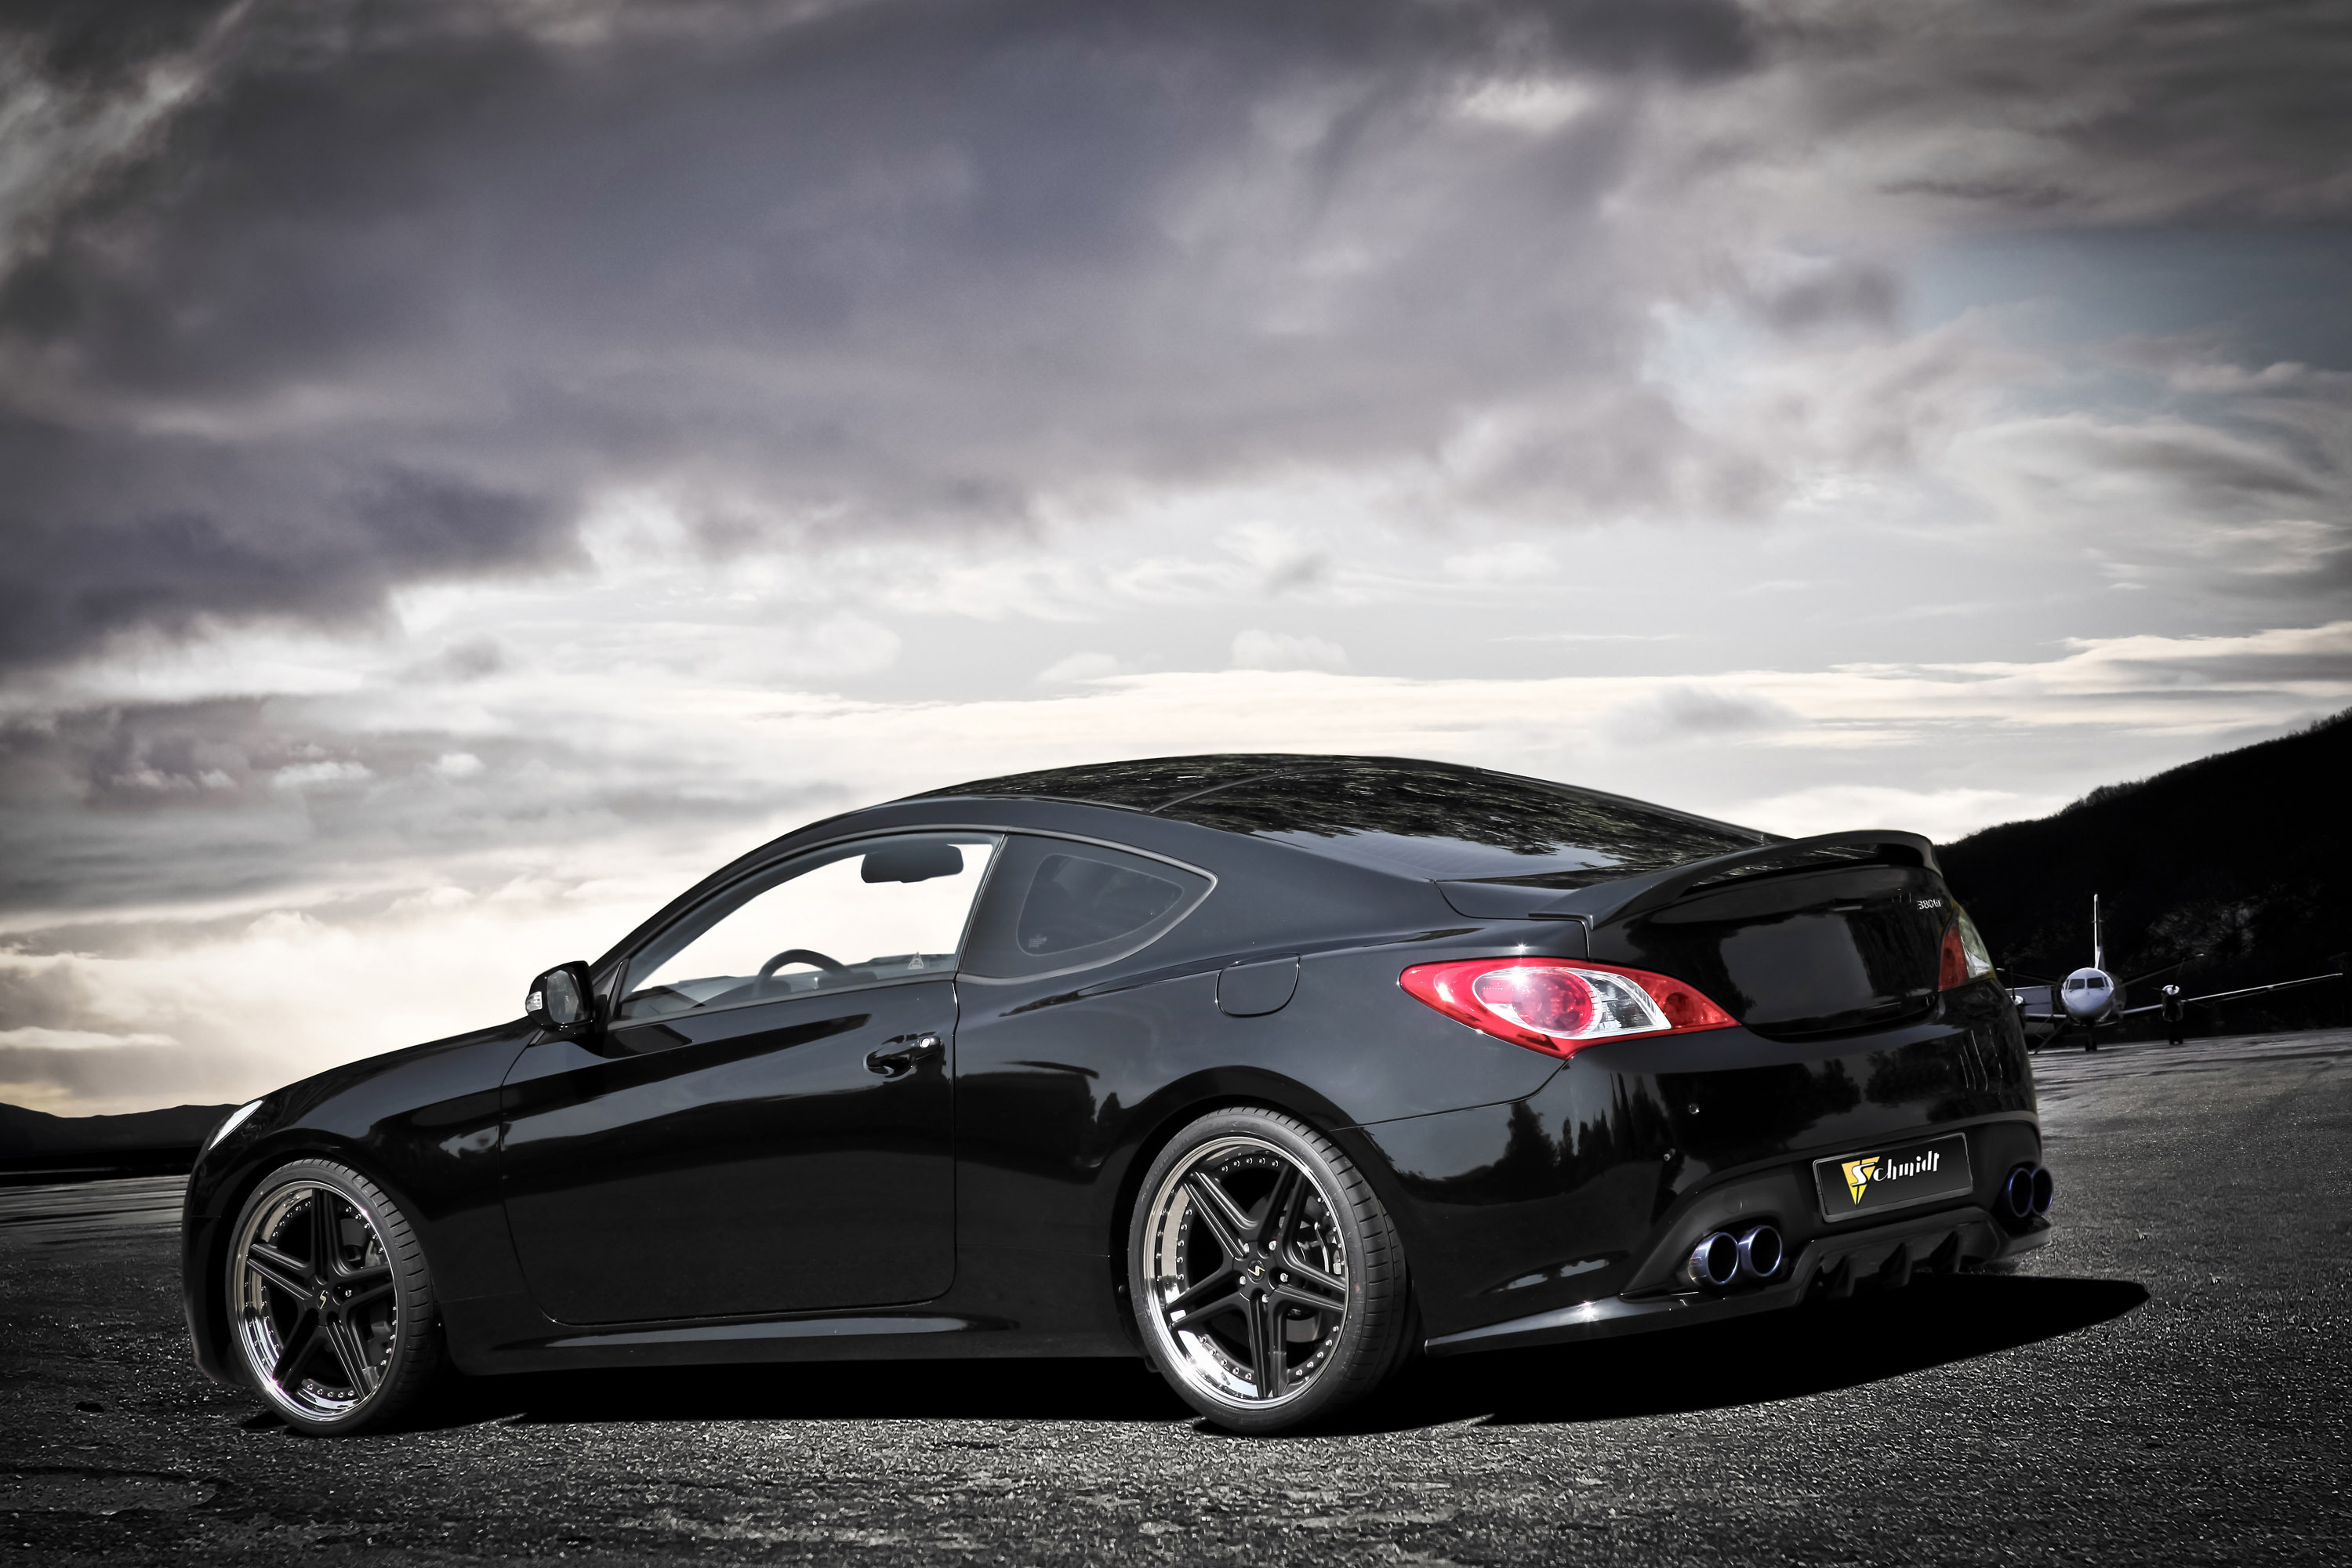 genesis coupe wallpaper - photo #39